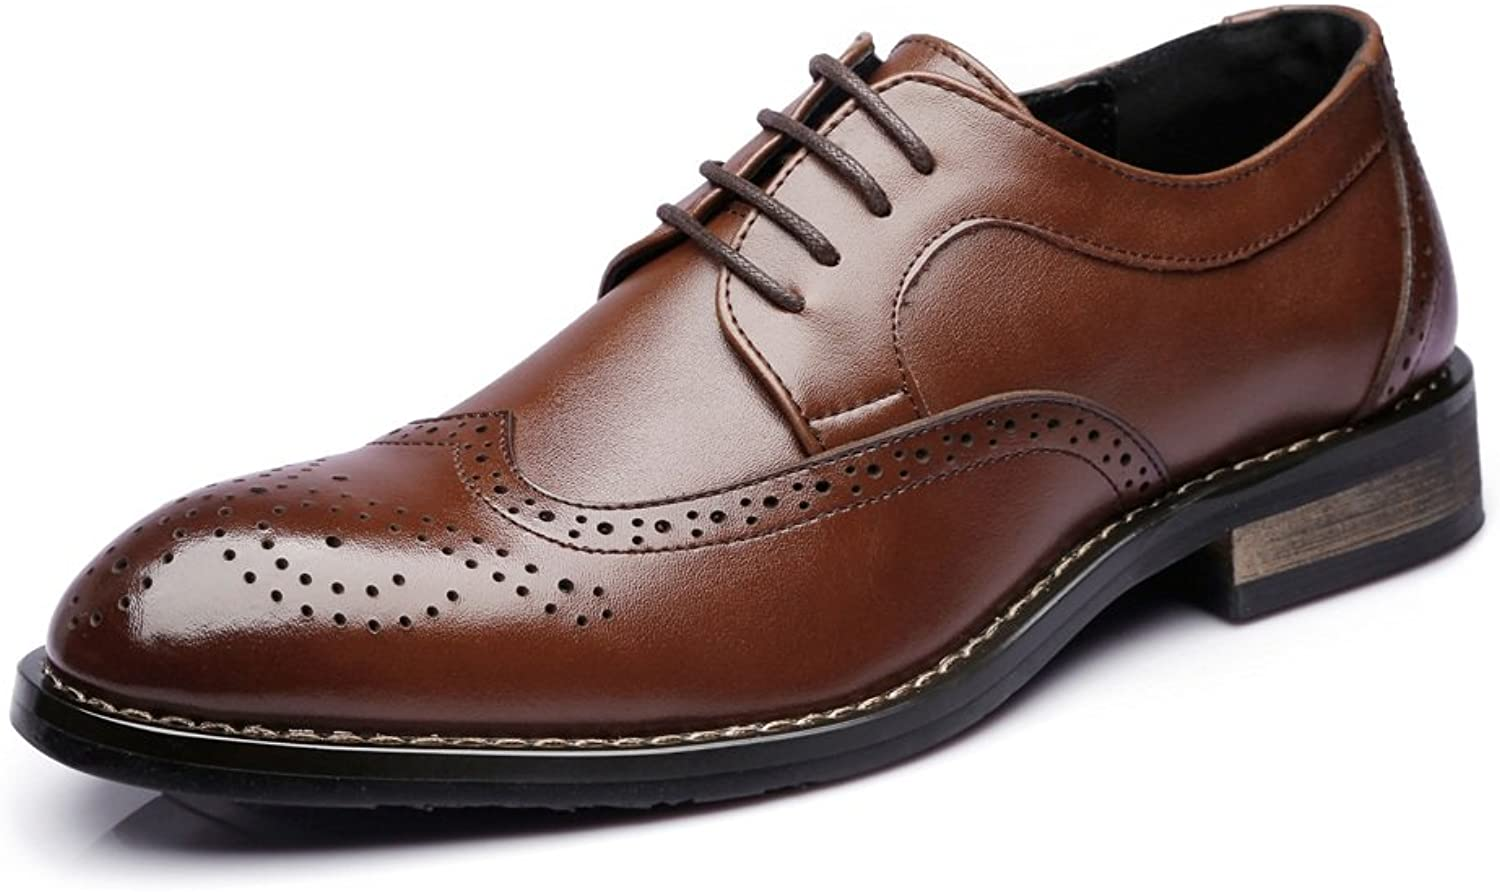 IWGR Sautope Basse da Uomo Basse da Lavoro Matte Hollow autoving   Pelle Lace up Fodera Traspirante Oxford con Lacci (Coloree   Marronee, Dimensione   29CM)